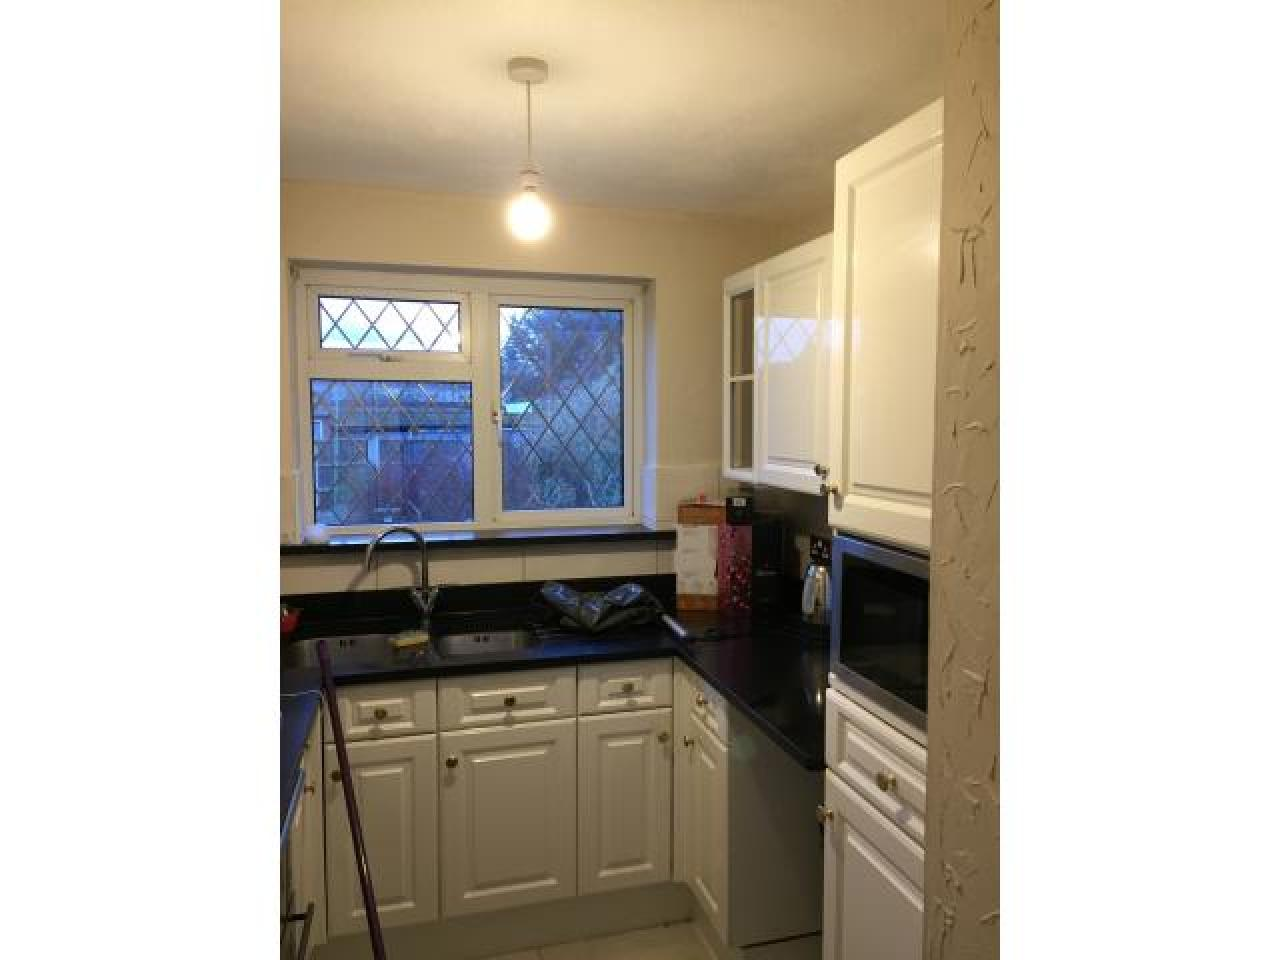 2 bedroom flat for rent in Collier Row,Romford - 3